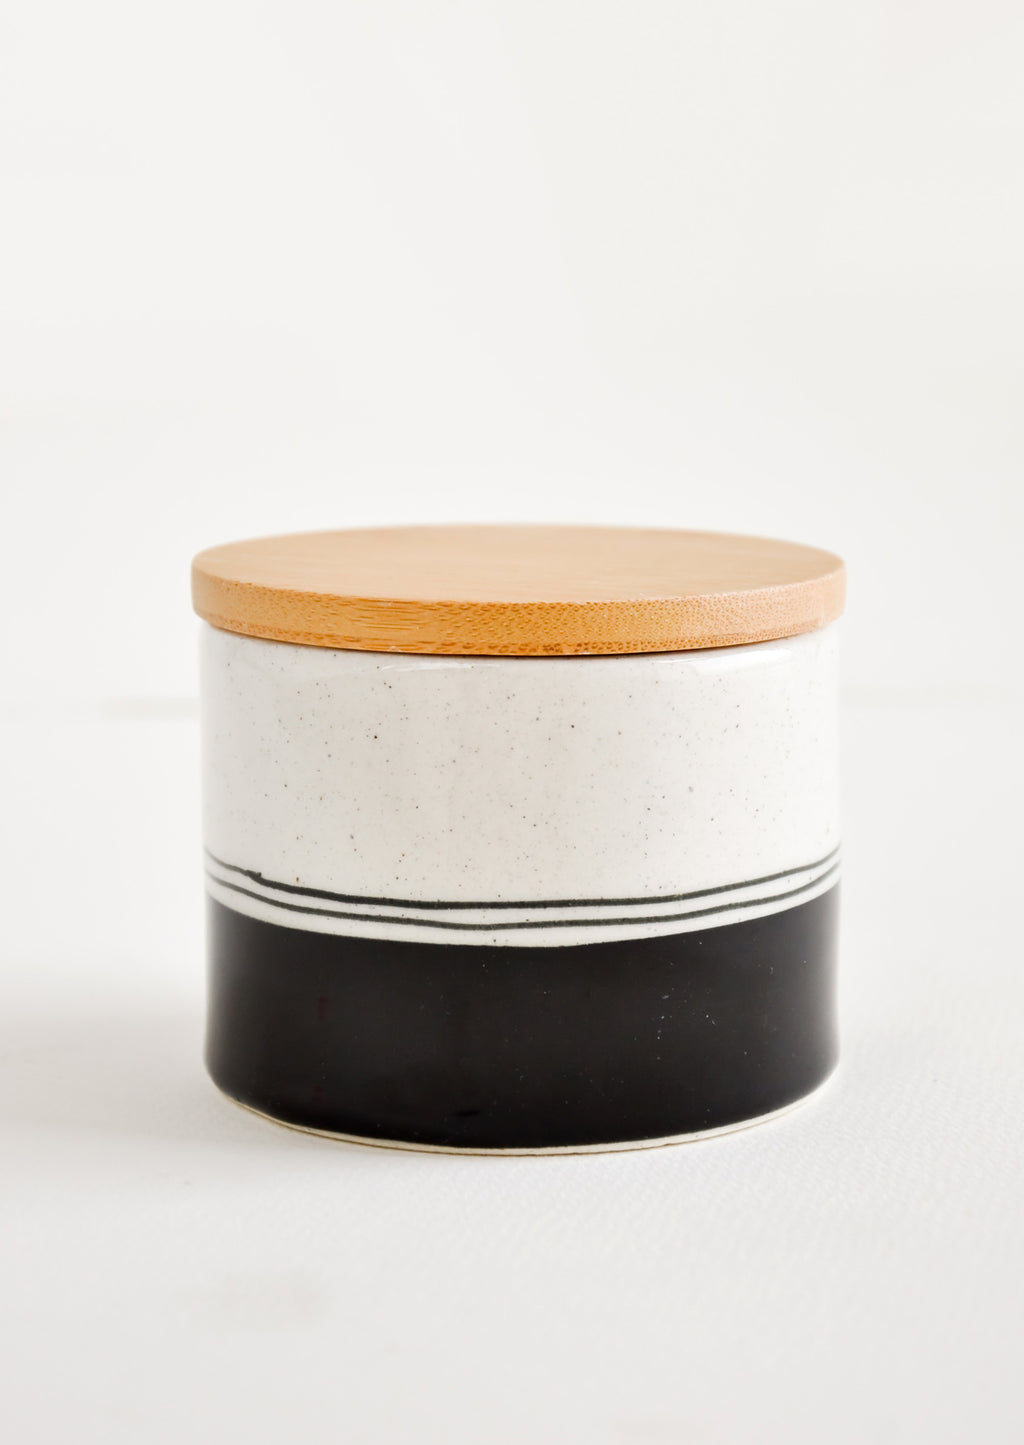 Salt Cellar: Speckle Stripe Storage Jar in Salt Cellar - LEIF